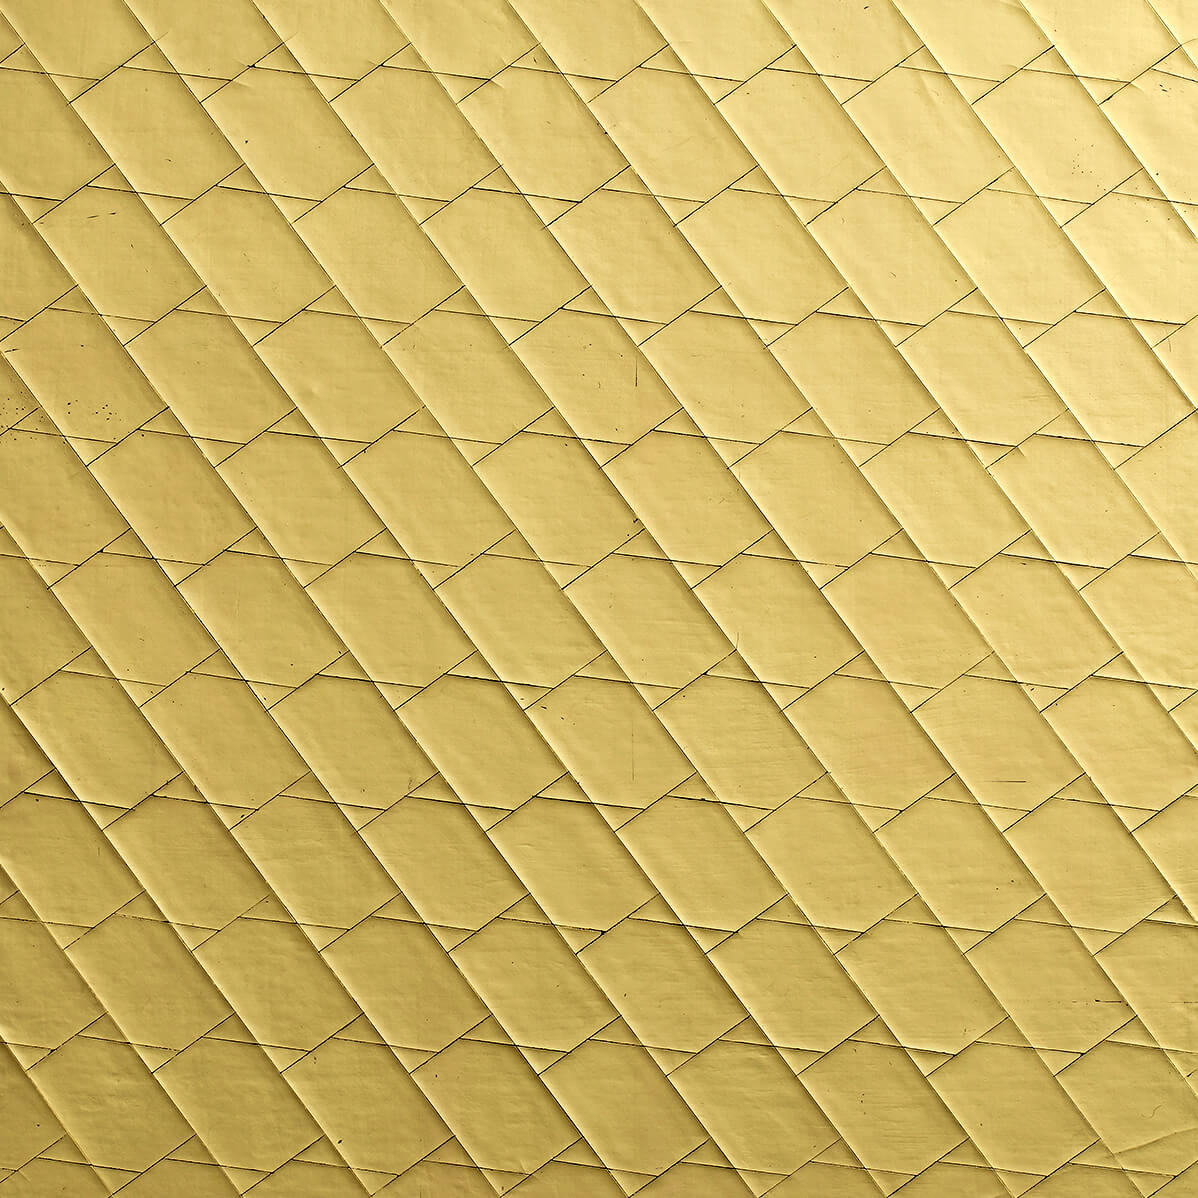 Gilded Cracked Gesso ice-ray pattern 2